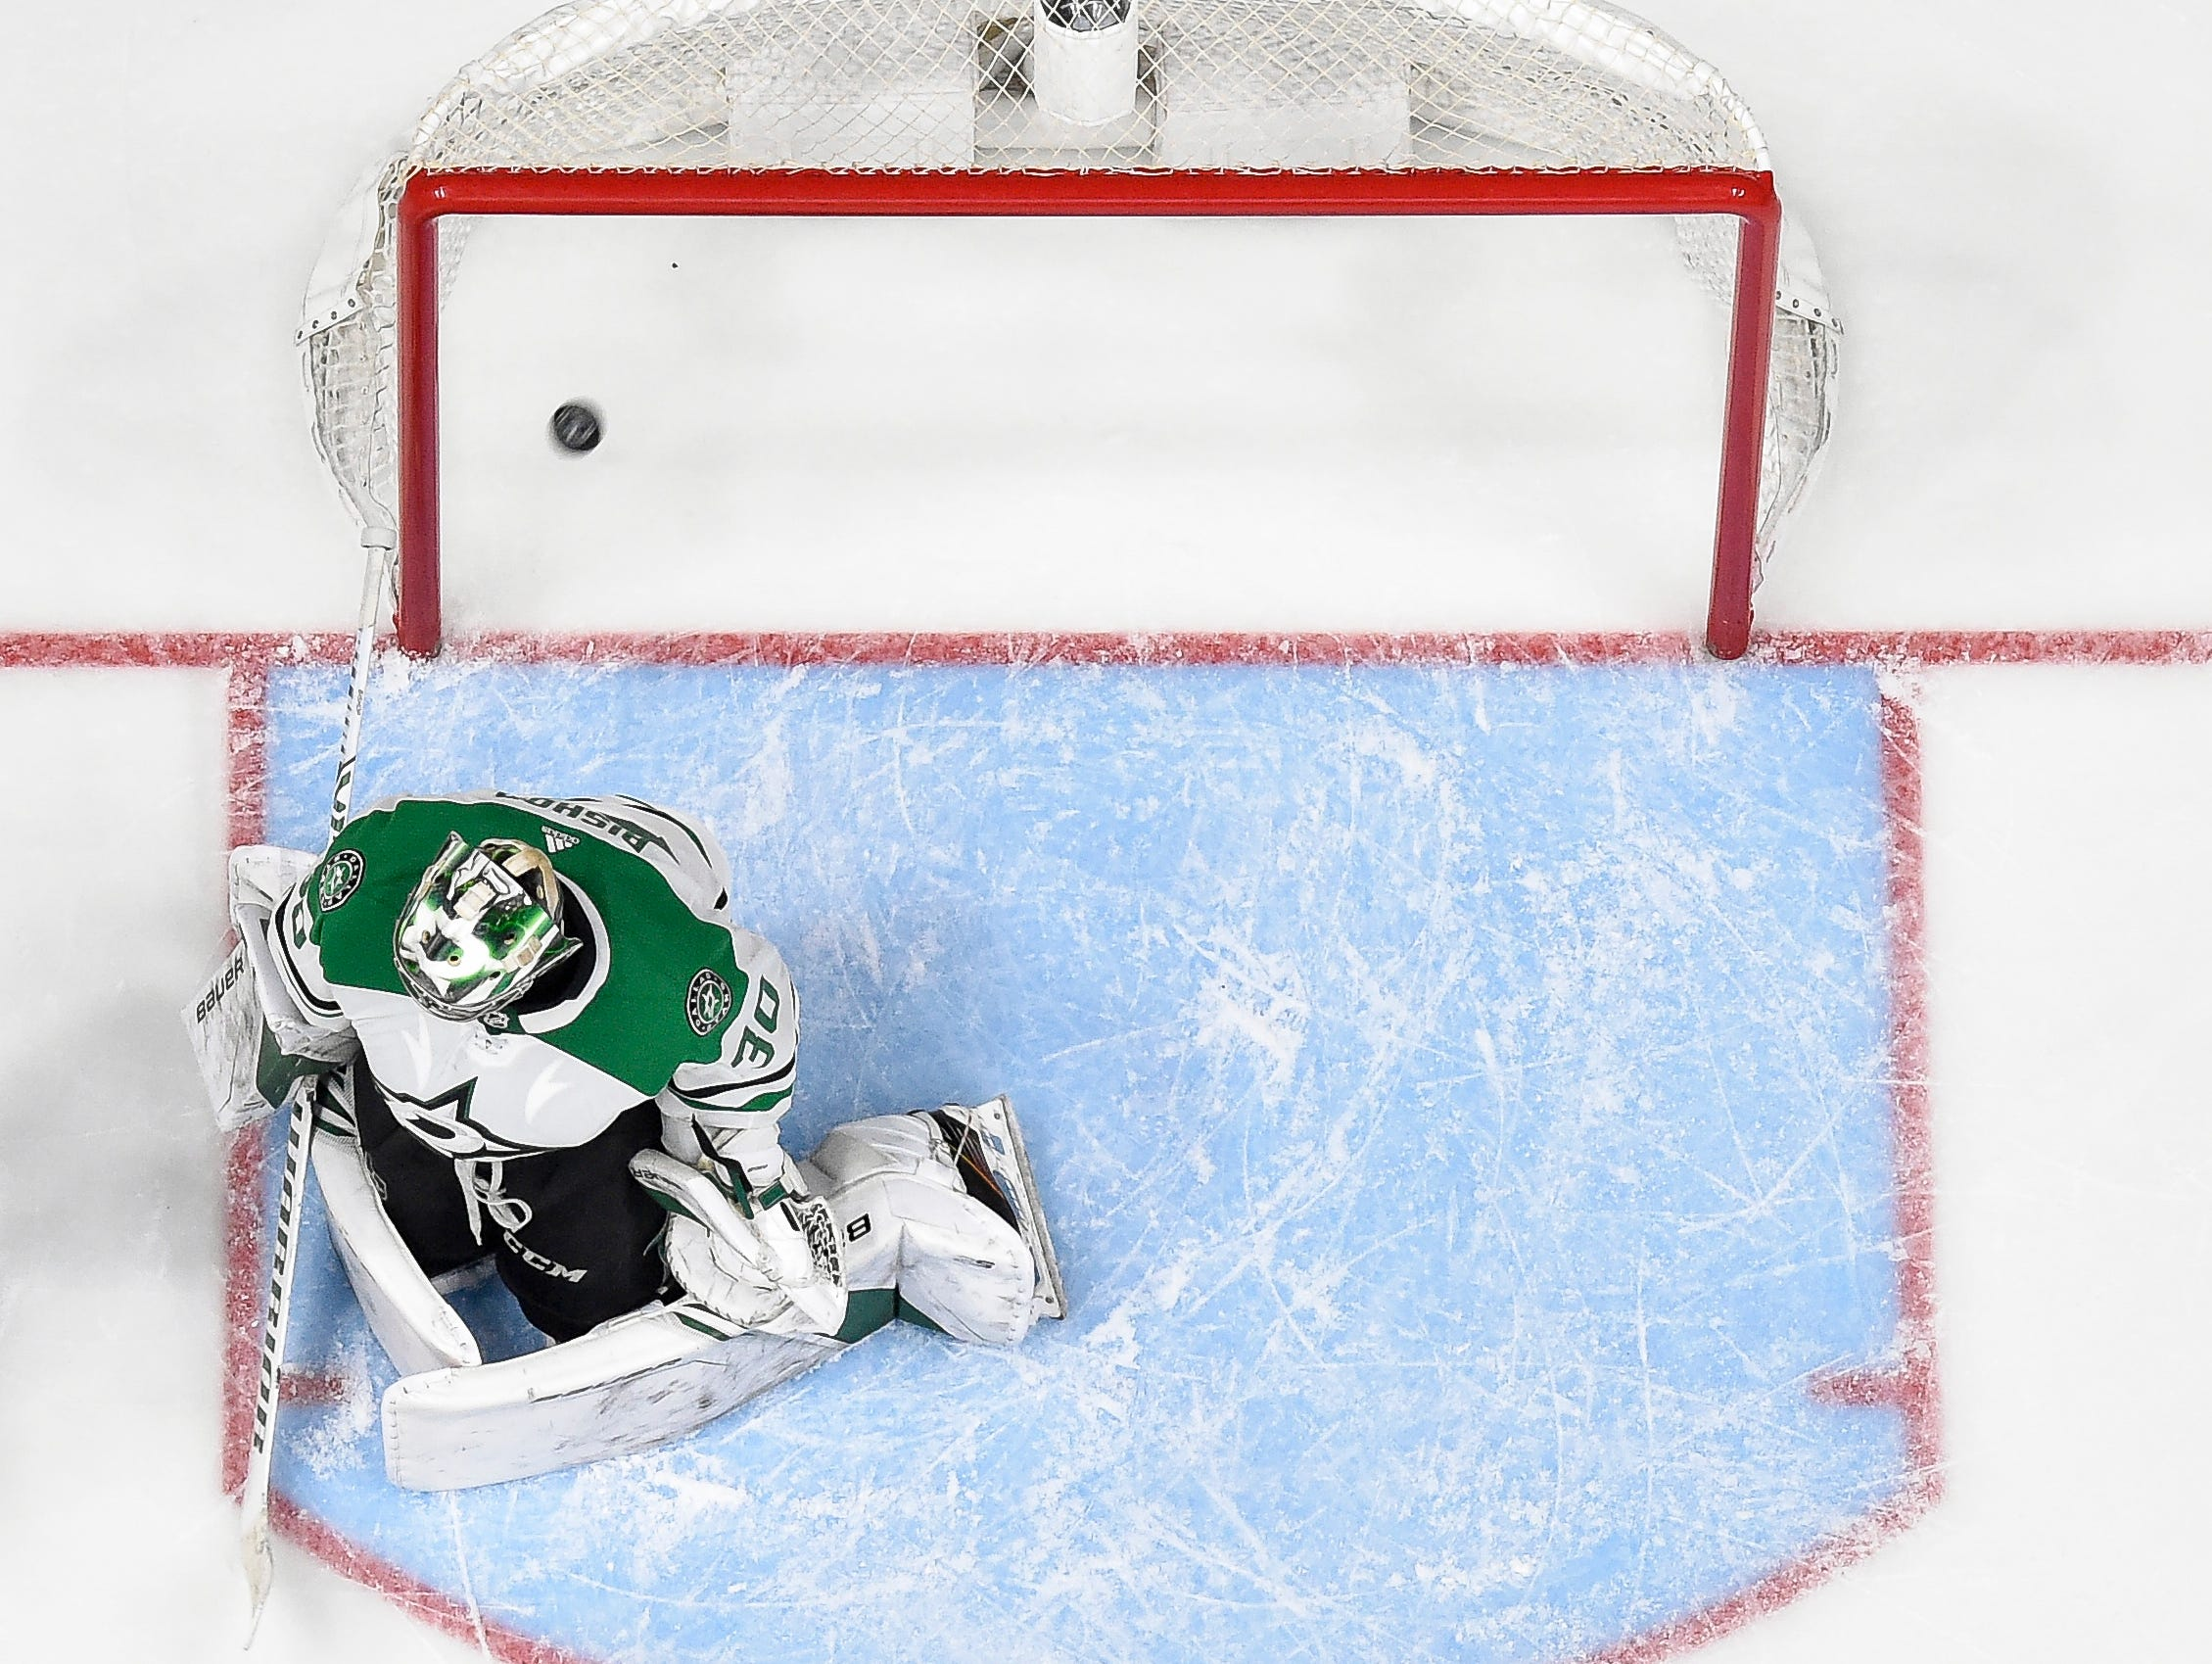 The game winning goal from Nashville Predators right wing Craig Smith lands in the net behind Dallas Stars goaltender Ben Bishop (30) during the overtime period of the divisional semifinal game at Bridgestone Arena in Nashville, Tenn., Wednesday, April 10, 2019.